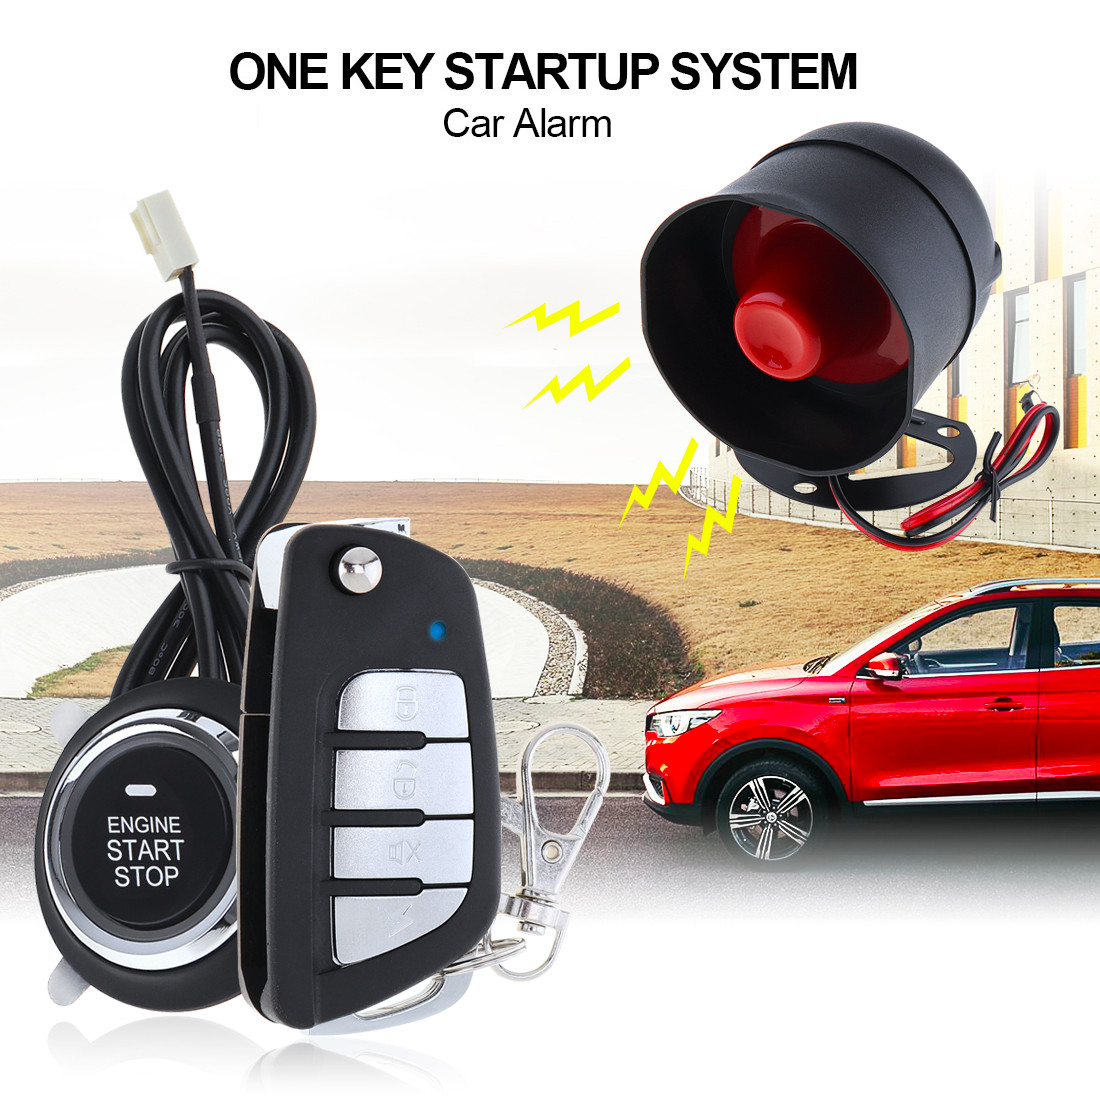 Universal Vehicle Car Alarm Security System Remote Start Stop Button Engine System with Auto Central Lock and Keyless Entry 5AUniversal Vehicle Car Alarm Security System Remote Start Stop Button Engine System with Auto Central Lock and Keyless Entry 5A